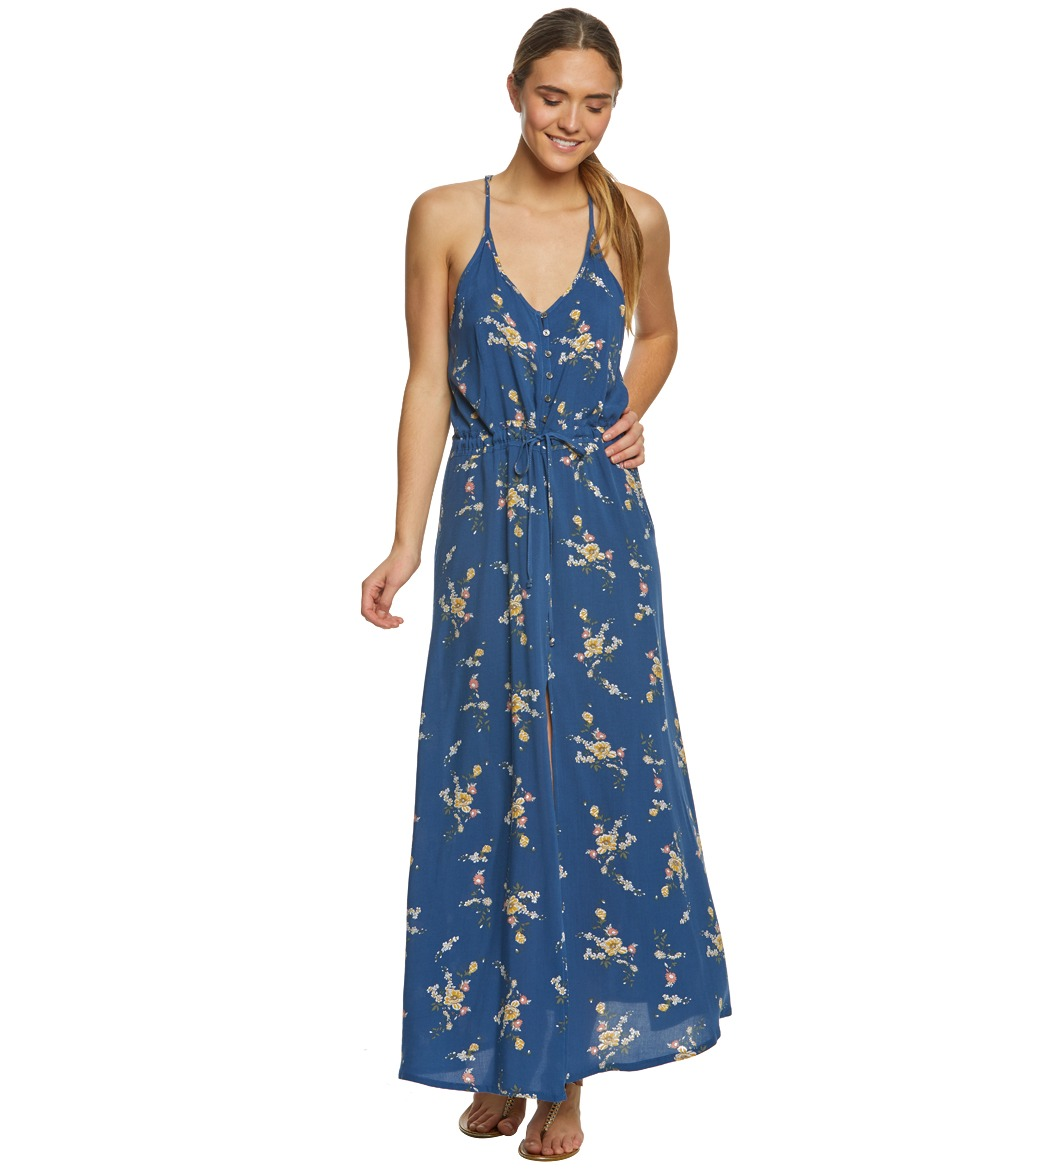 Rip Curl Women s Malia Maxi Dress at SwimOutlet.com - Free Shipping c45c1a2bf